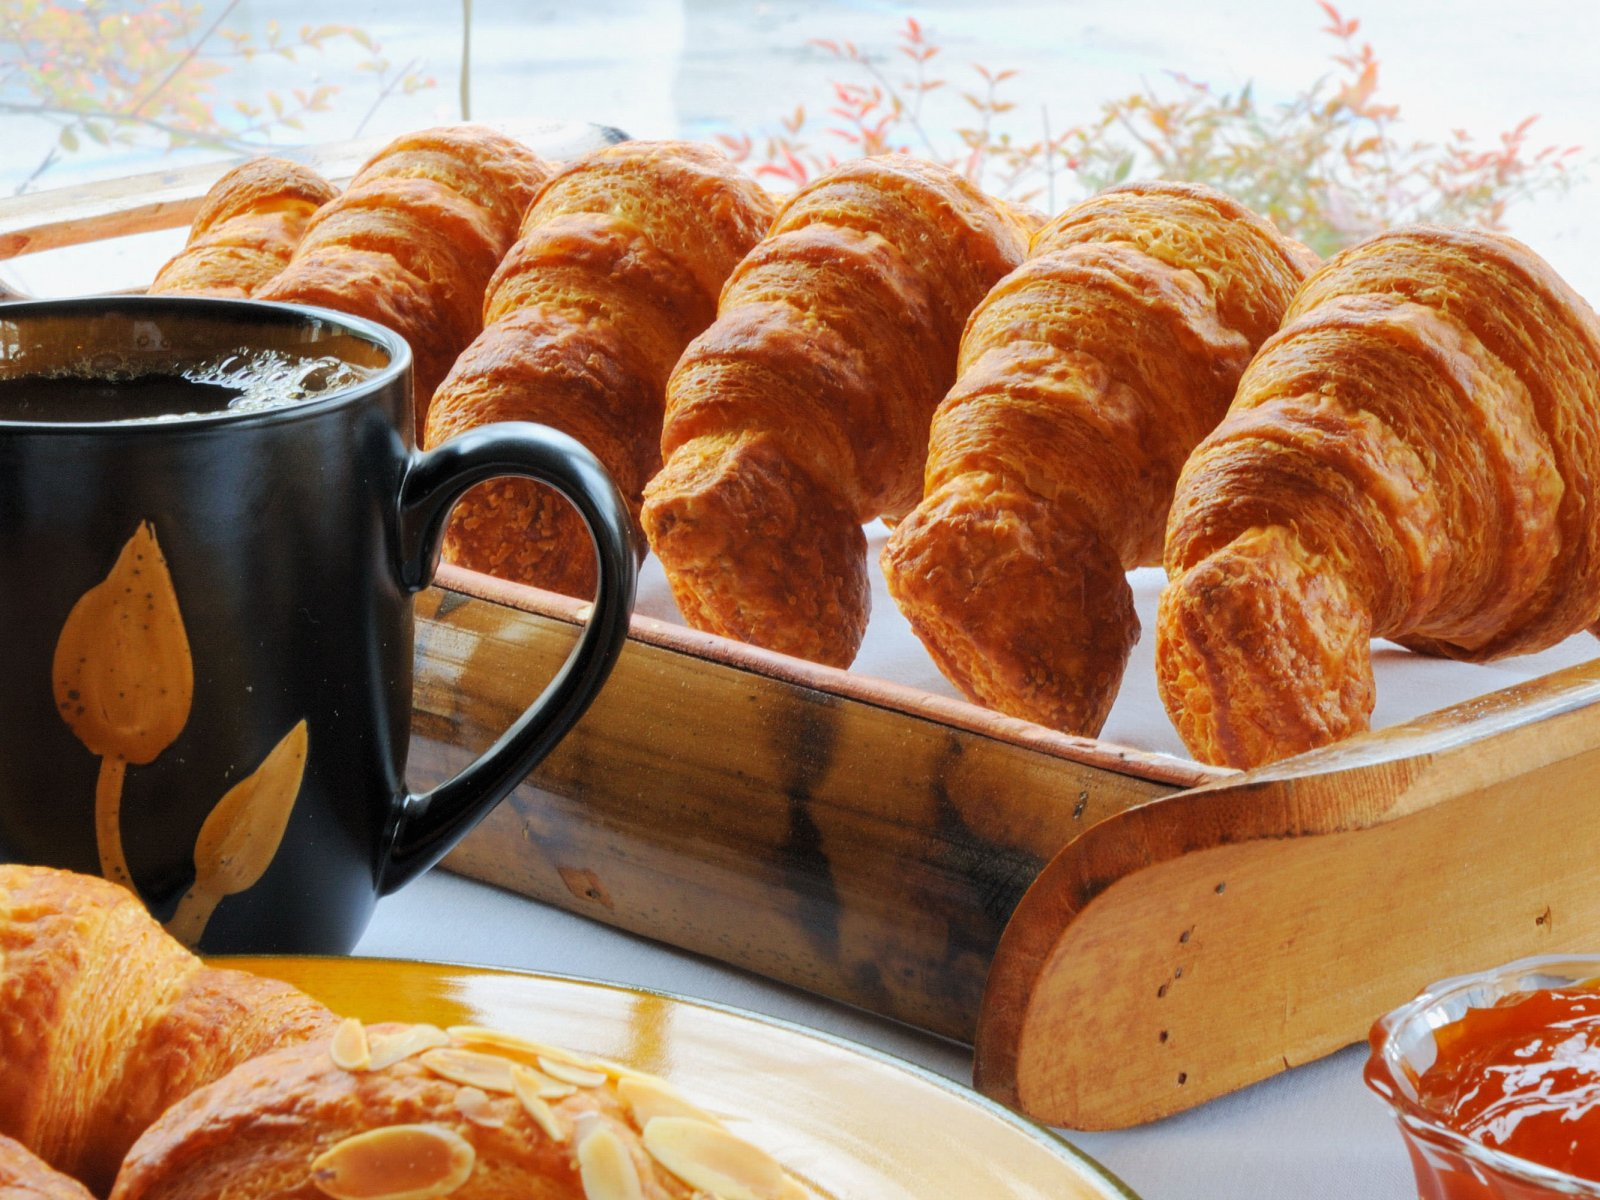 How to taste croissants for a breakfast in Paris